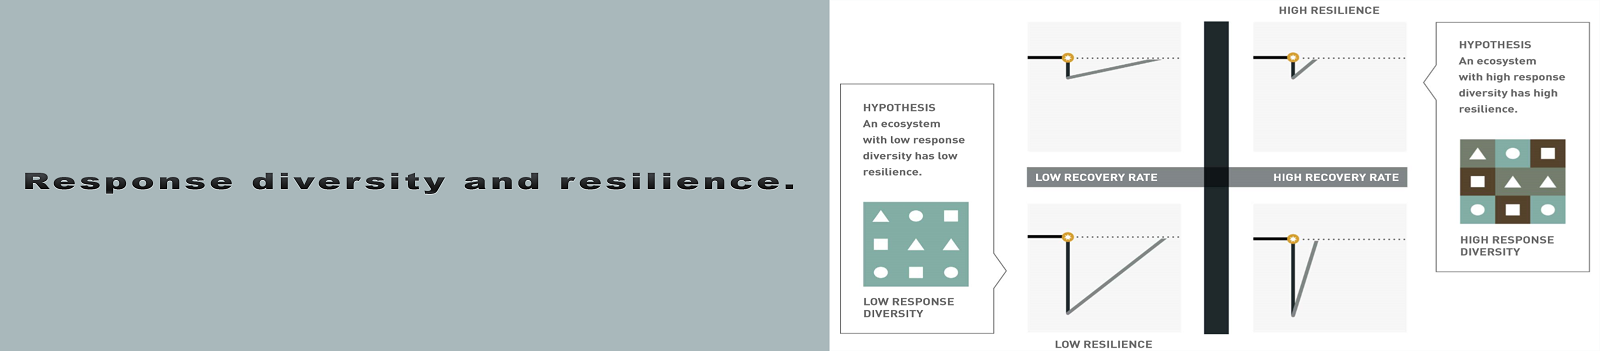 Response diversity and resilience